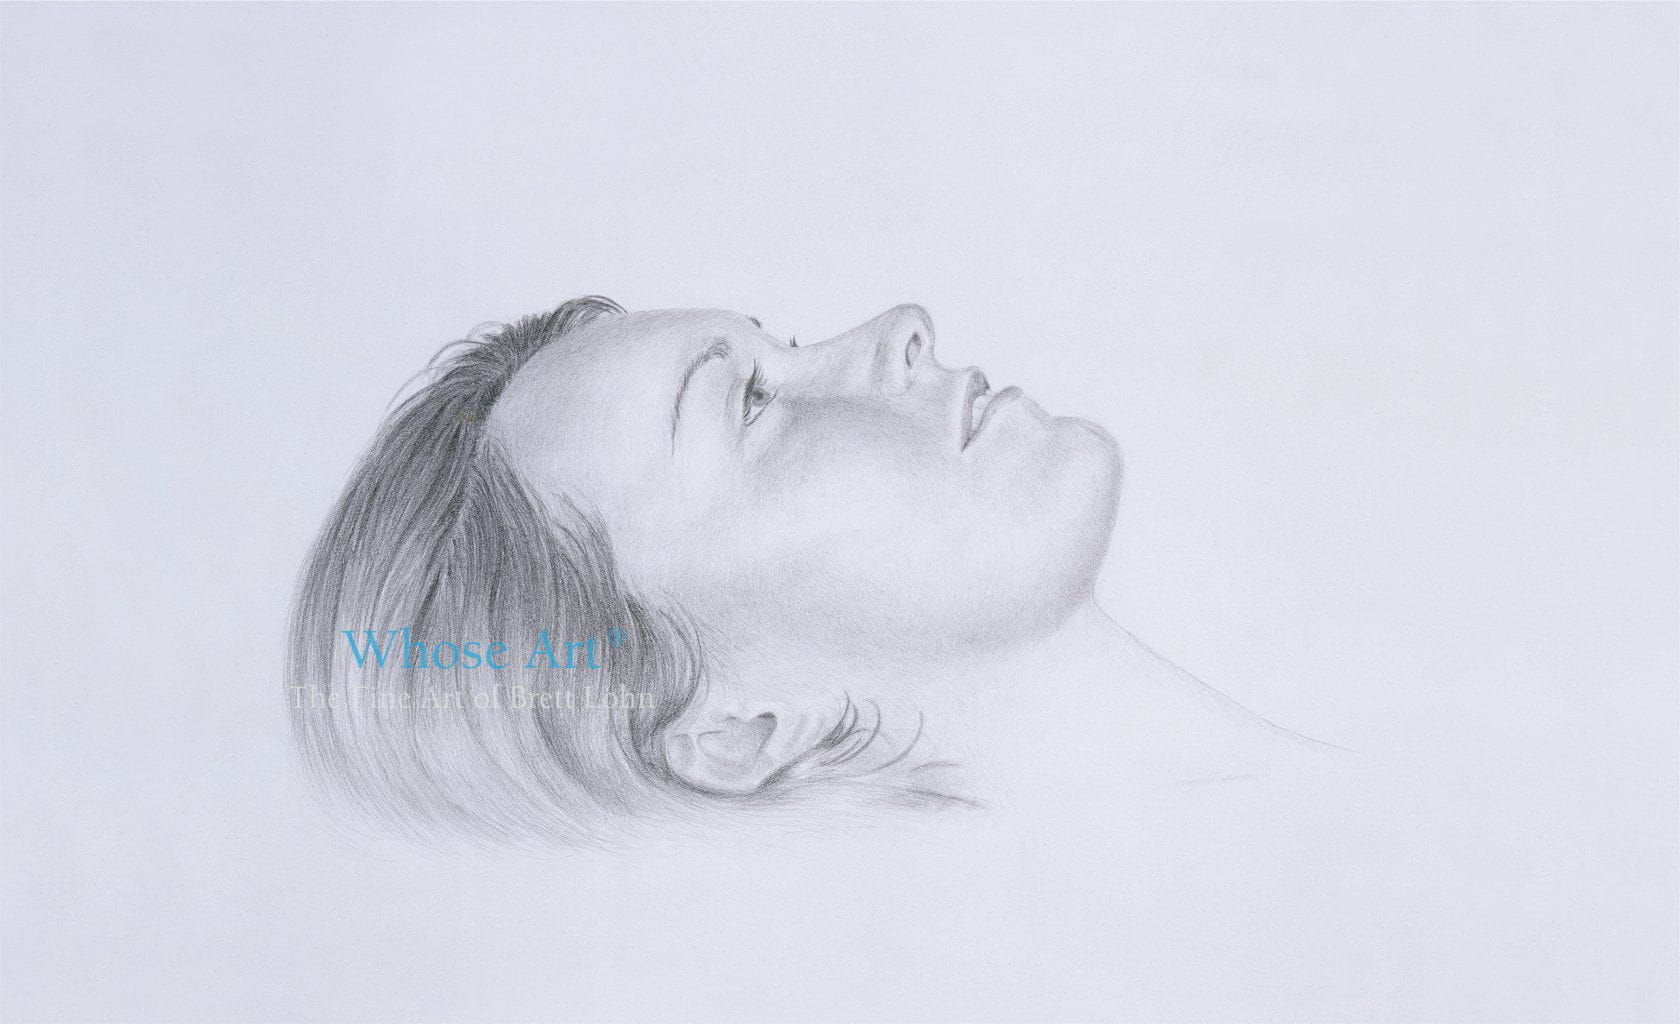 Black and white wall art drawing showing the face of a girl, shaded in pencil, lying down but looking upwards, daydreaming.